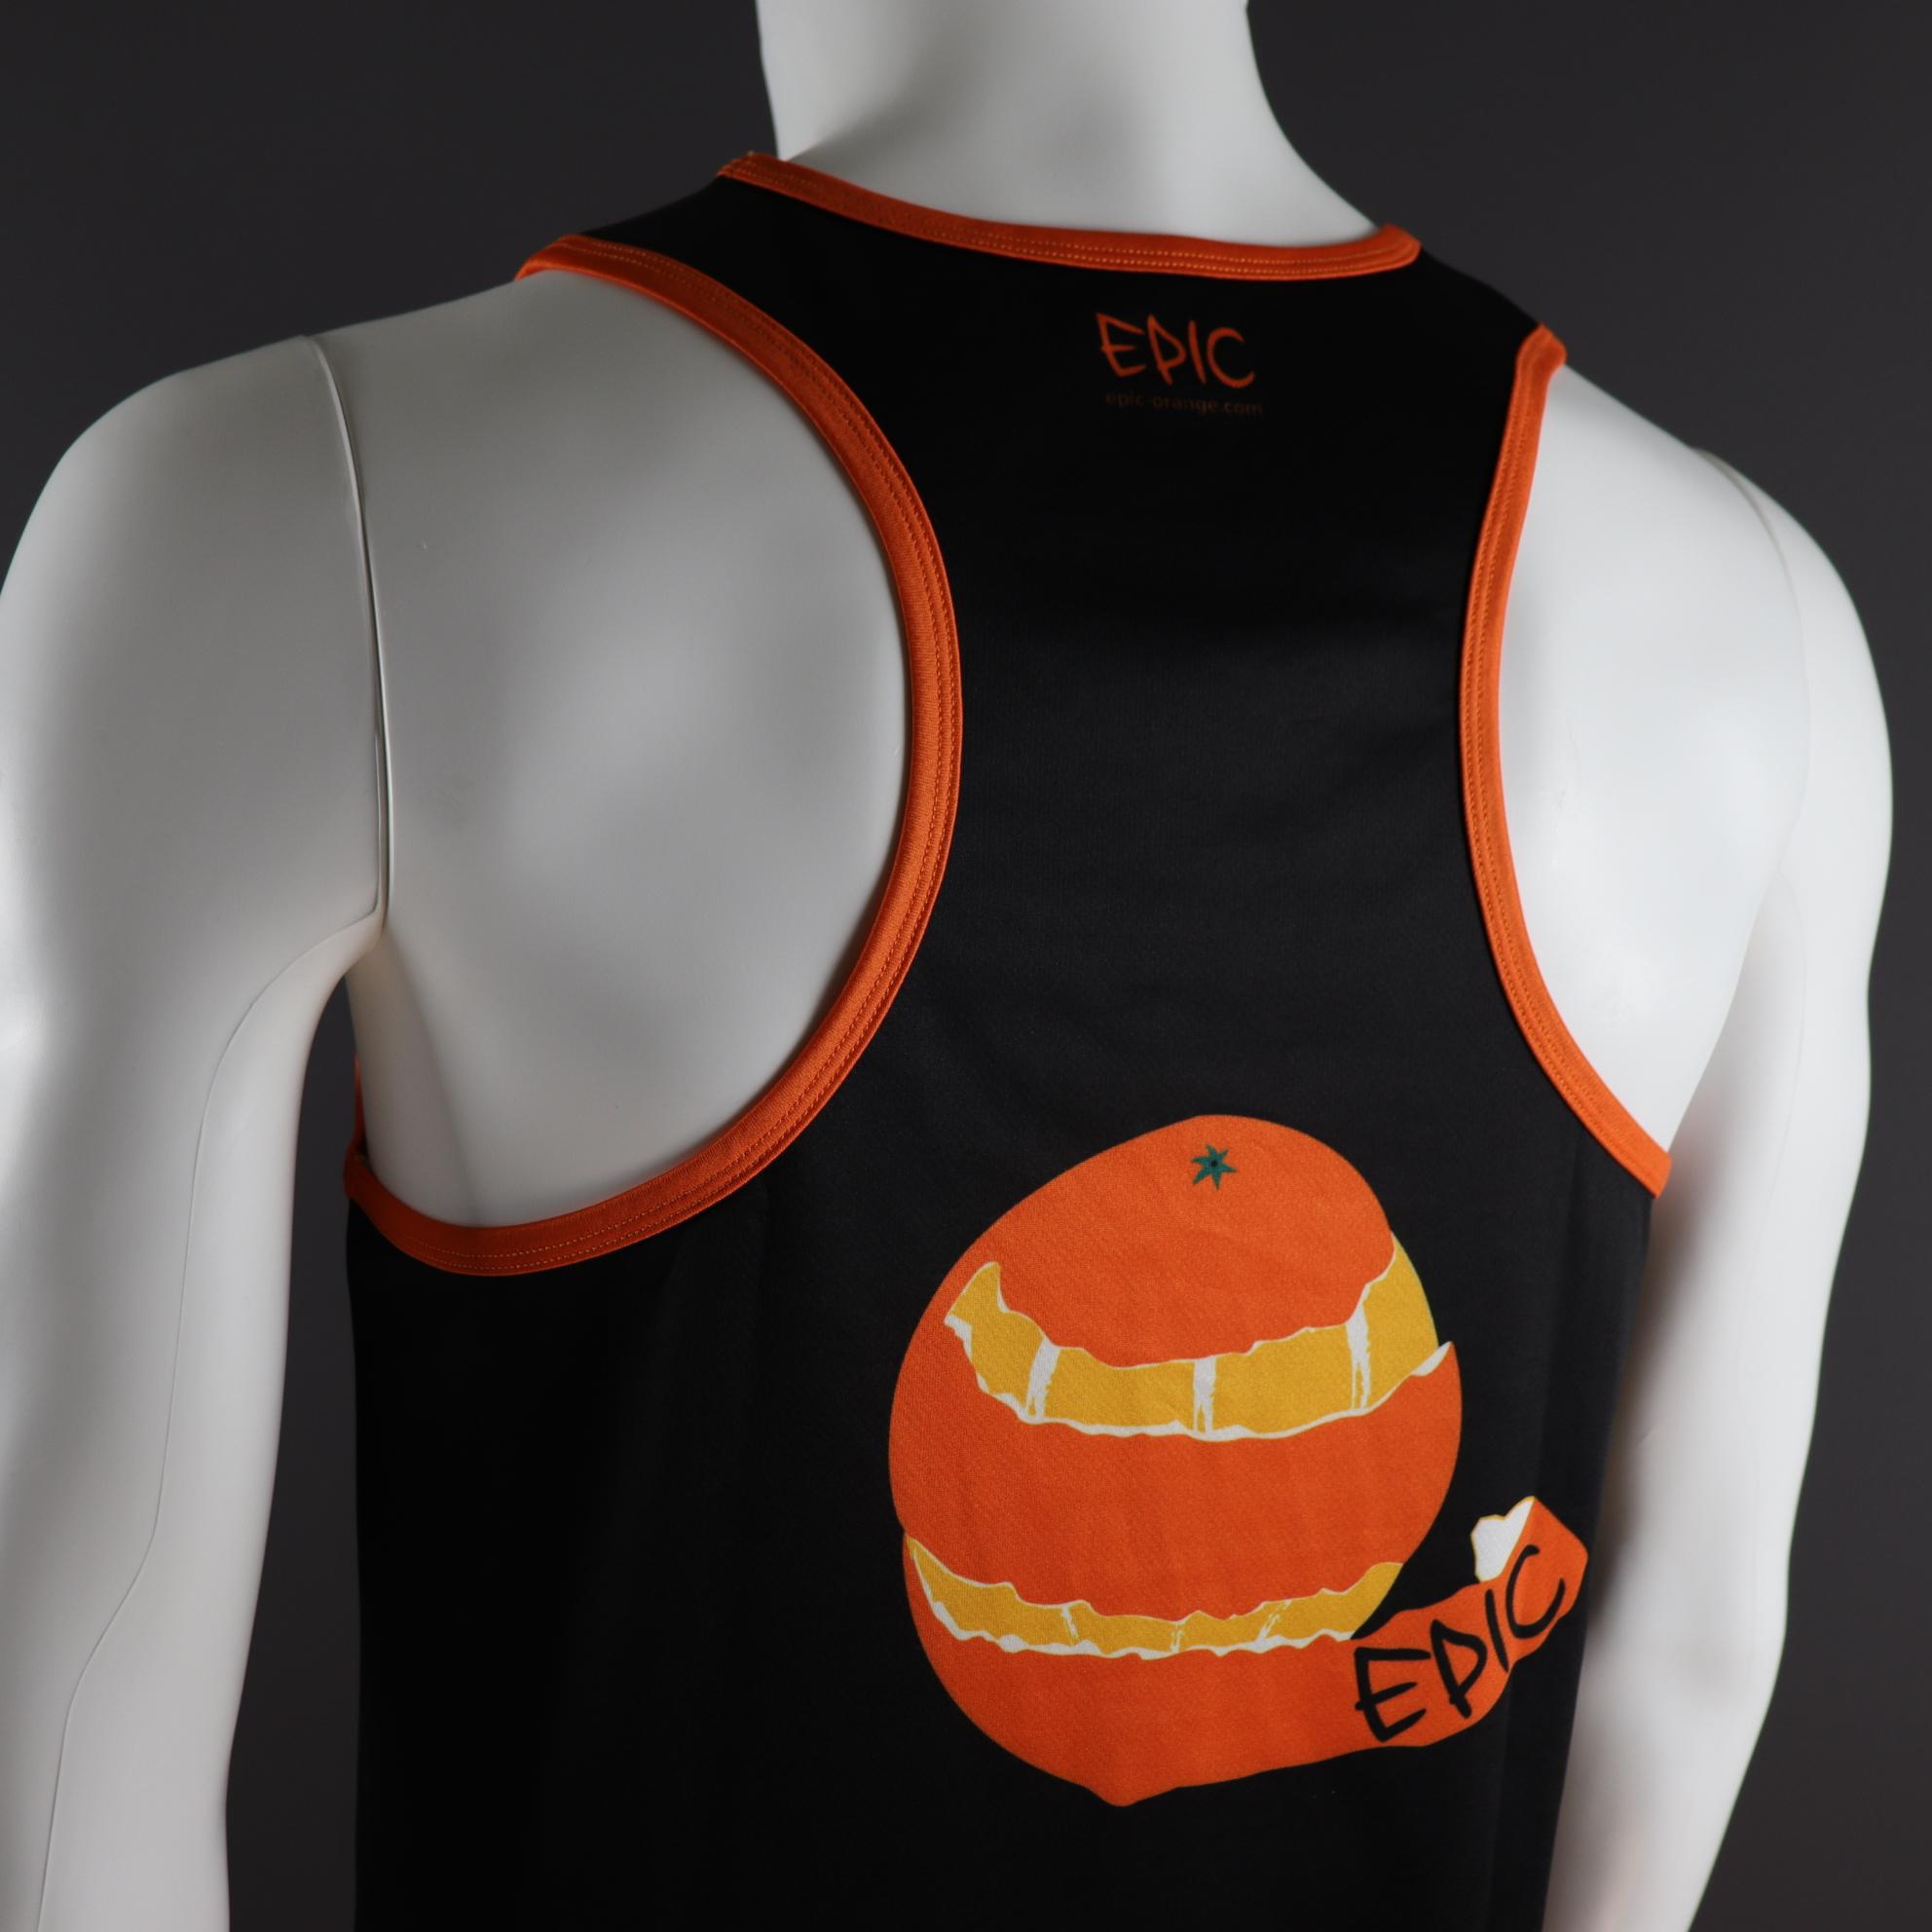 Custom Printed Racer Back Run Vests